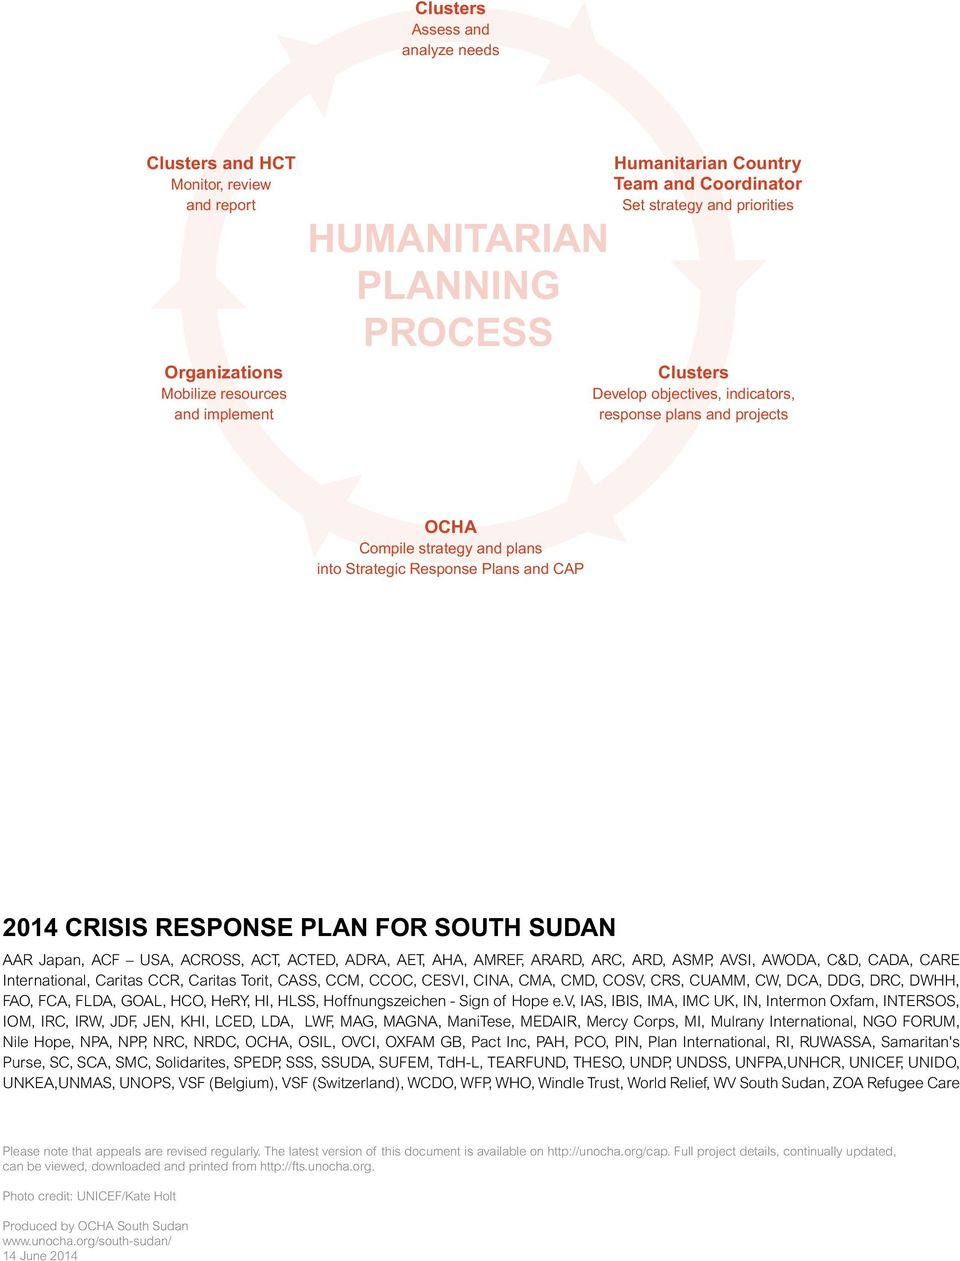 South Sudan AAR Japan, ACF USA, ACROSS, ACT, ACTED, ADRA, AET, AHA, AMREF, ARARD, ARC, ARD, ASMP, AVSI, AWODA, C&D, CADA, CARE International, Caritas CCR, Caritas Torit, CASS, CCM, CCOC, CESVI, CINA,